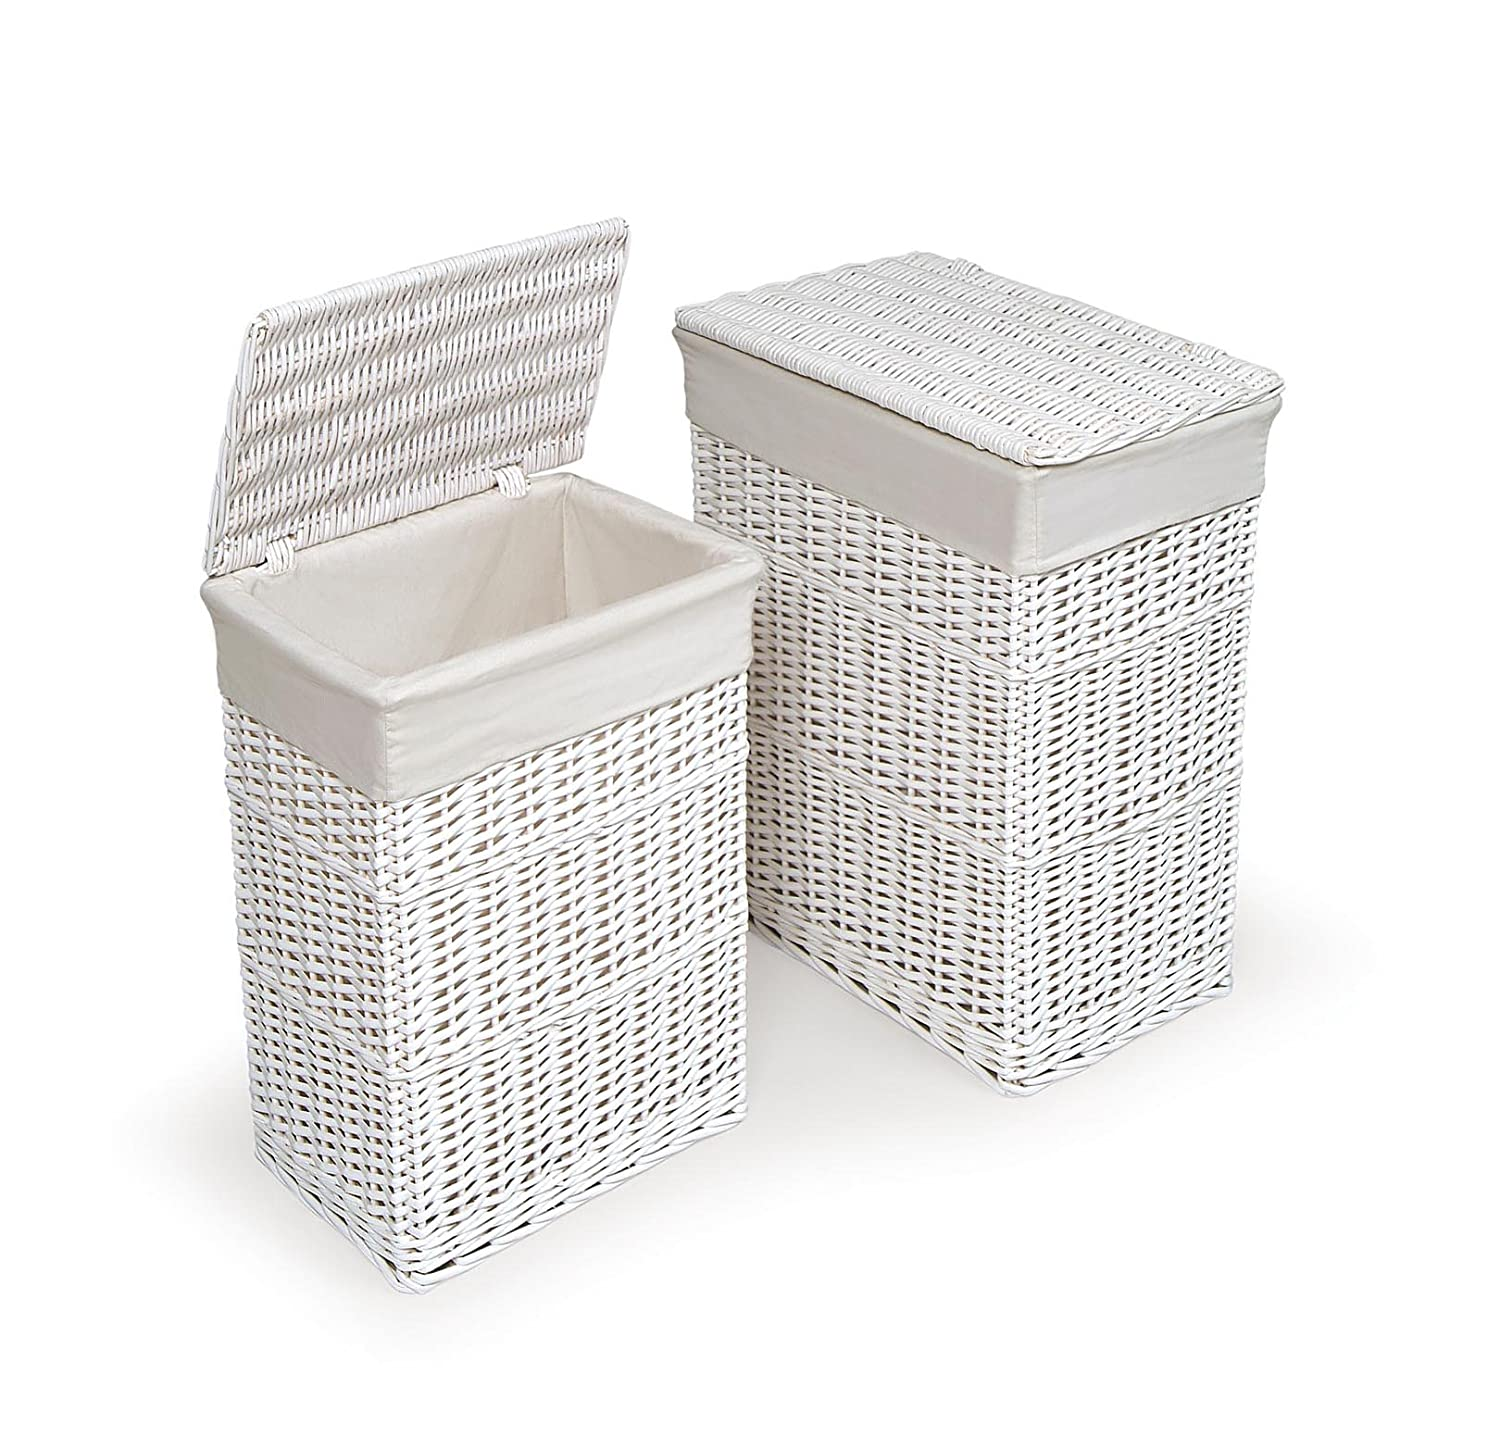 Amazon.com  Badger Basket Two H&er Set with Liners White  Nursery H&ers  Baby  sc 1 st  Amazon.com & Amazon.com : Badger Basket Two Hamper Set with Liners White ... pezcame.com